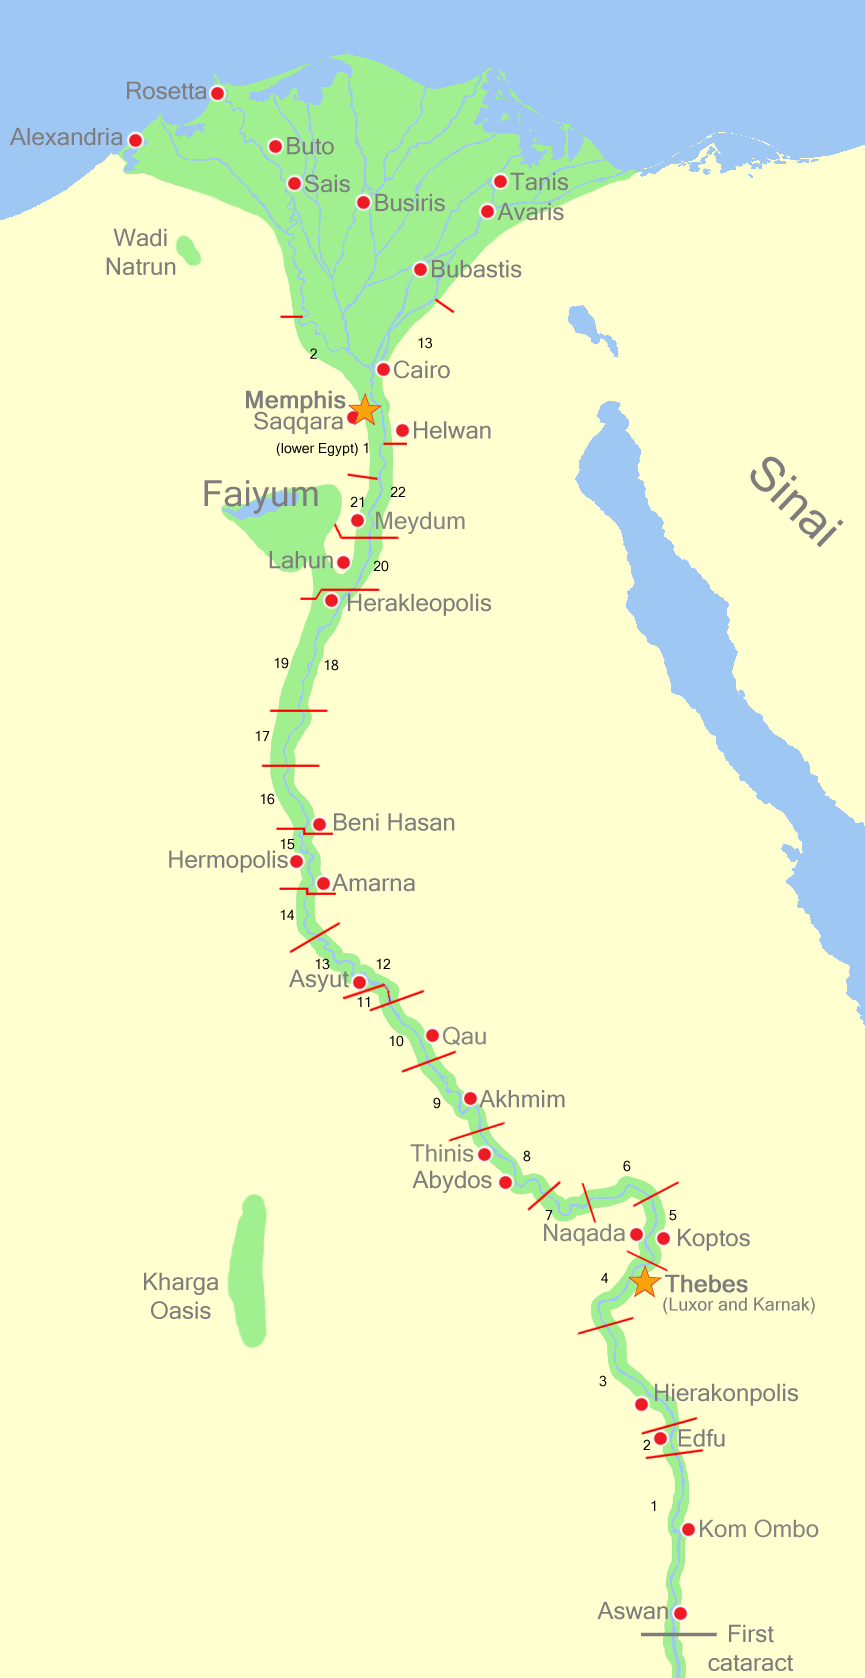 File:Upper Egypt Nomes.png - Wikipedia, the free encyclopedia